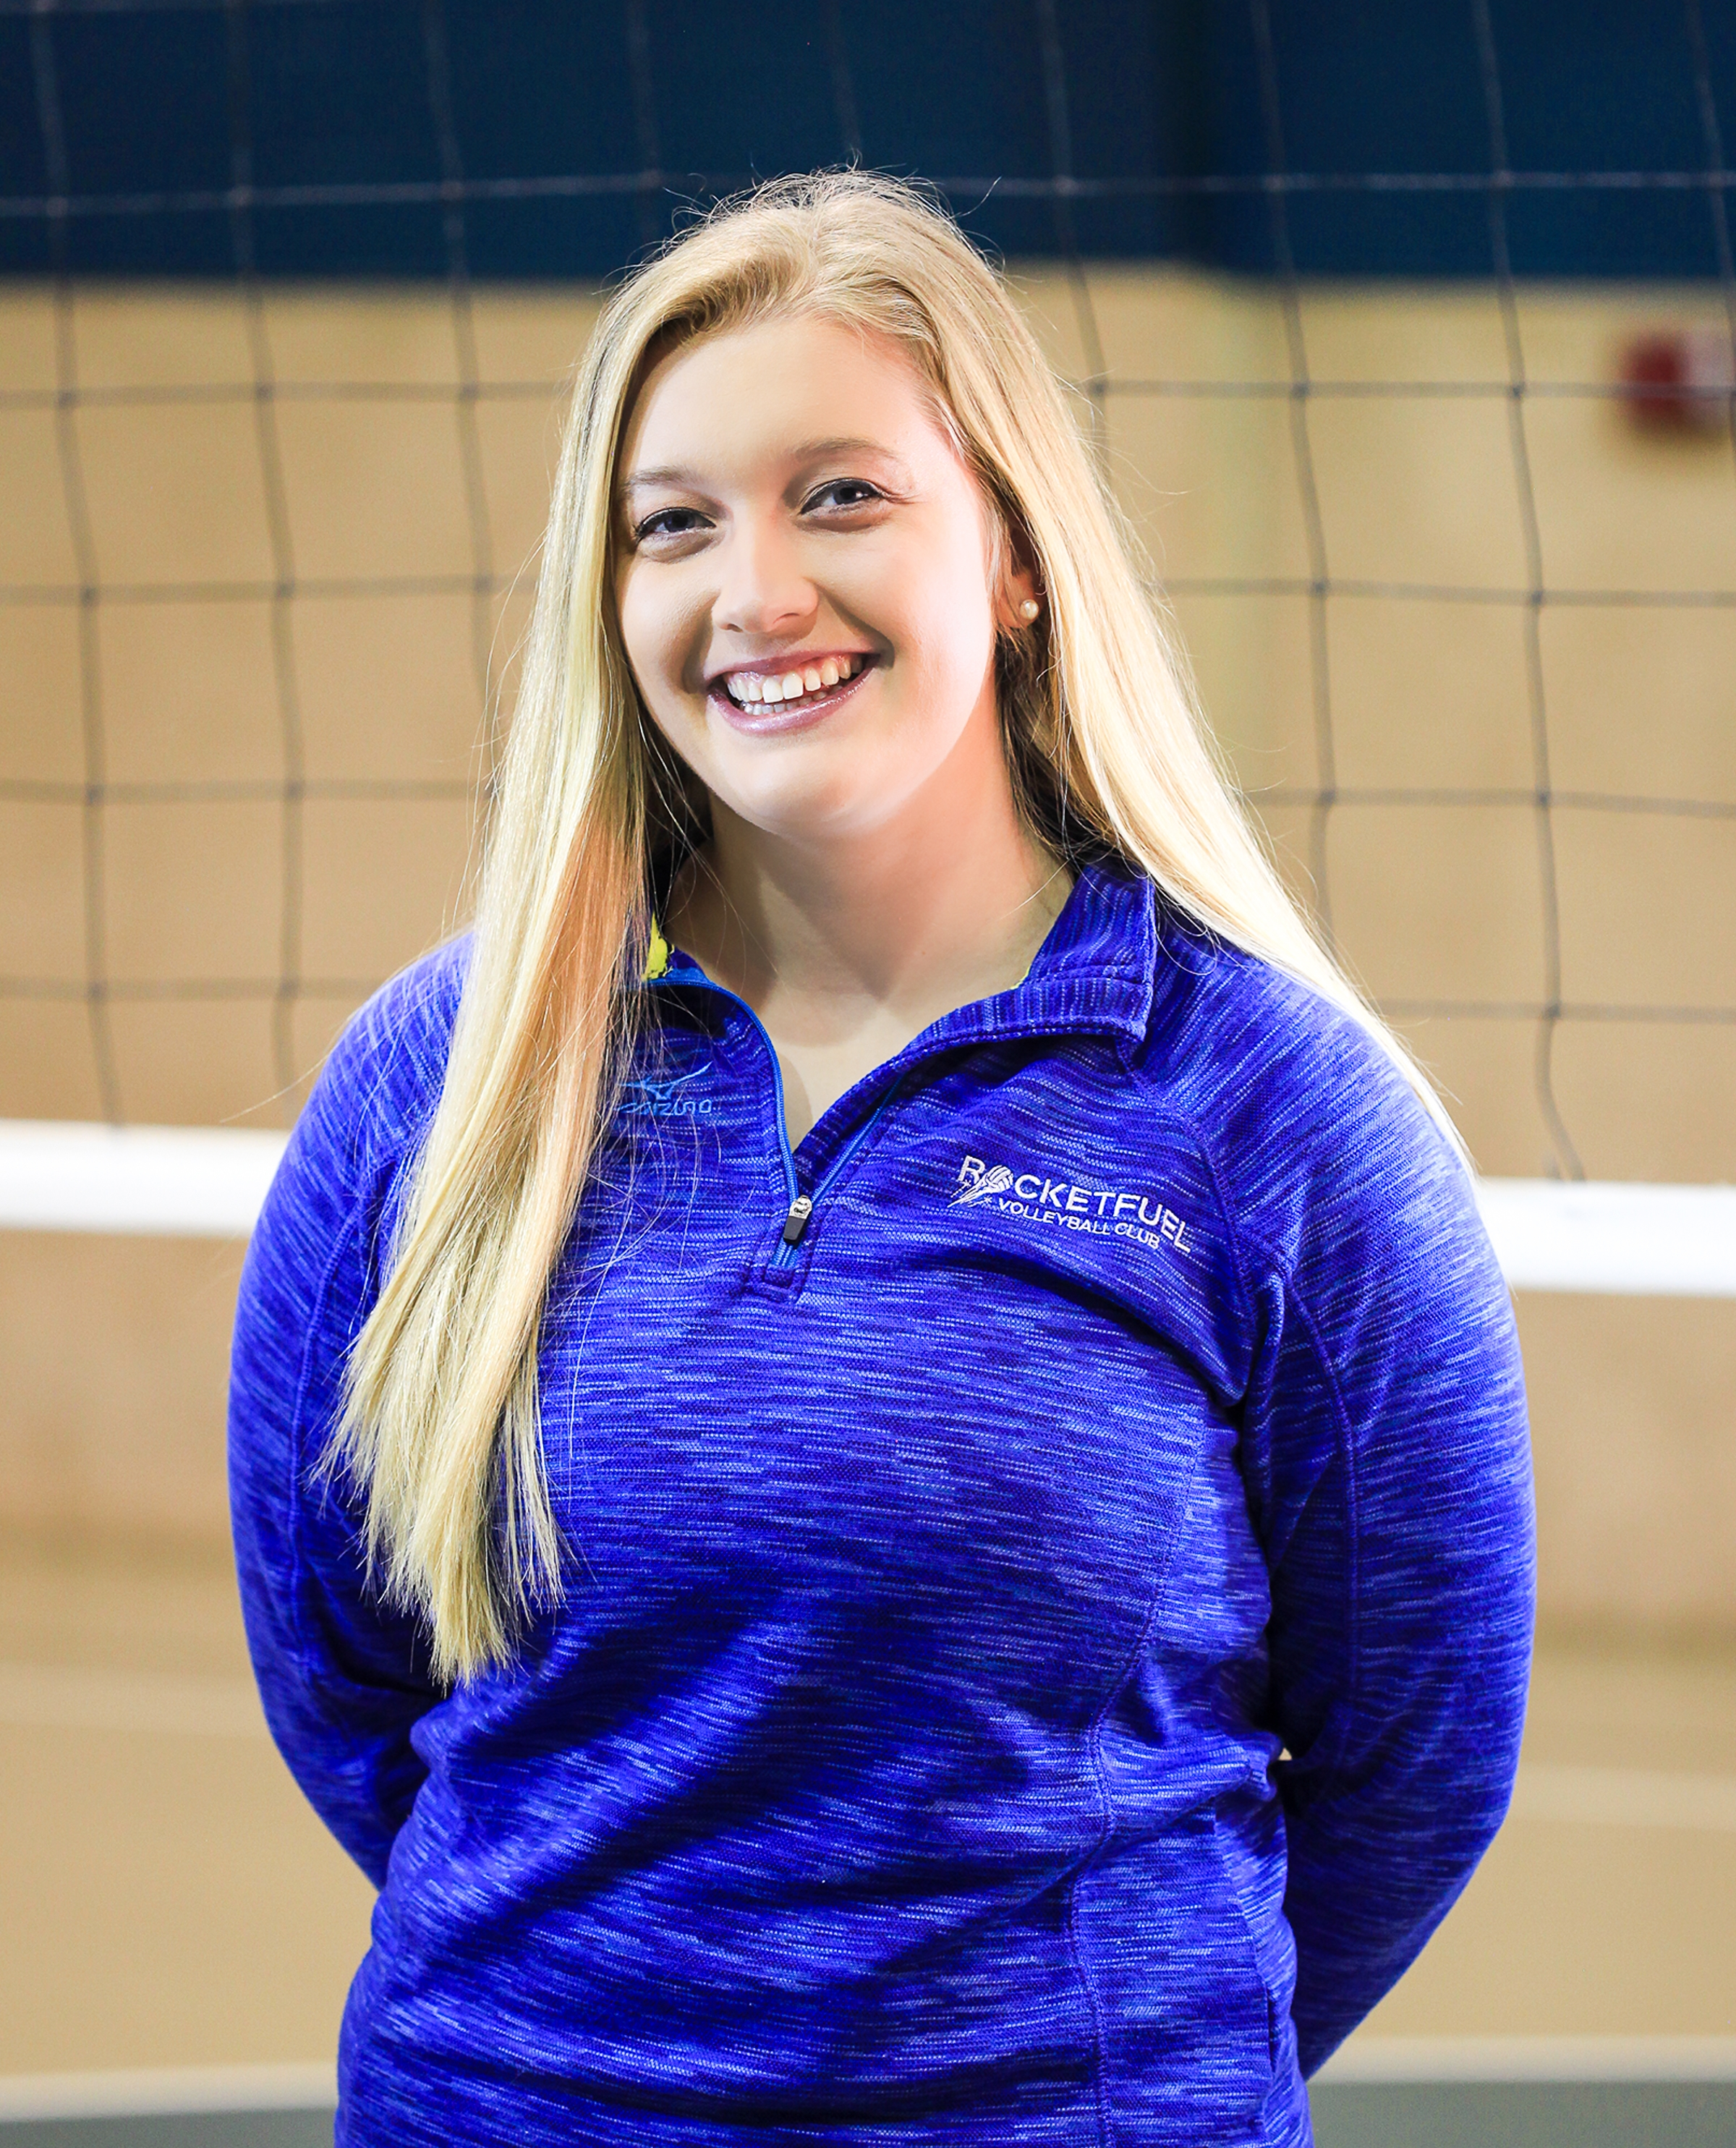 Allison Lazewski - Allison Lazewski joined our Shreveport RocketFuel Volleyball program in the 2017-18 season. She is a graduate of Centenary College with a degree in sociology.Lazewski played on the Centenary Ladies volleyball team for 4 years, and played many years prior to college. She is from Dallas, TX where she played for Summit Volleyball Club for 6 years and Blocksport Volleyball Club for two years. She also played 4 years on the varsity volleyball team at Woodrow Wilson H.S She has experience in almost every position, but for most of her career she has been a Setter.